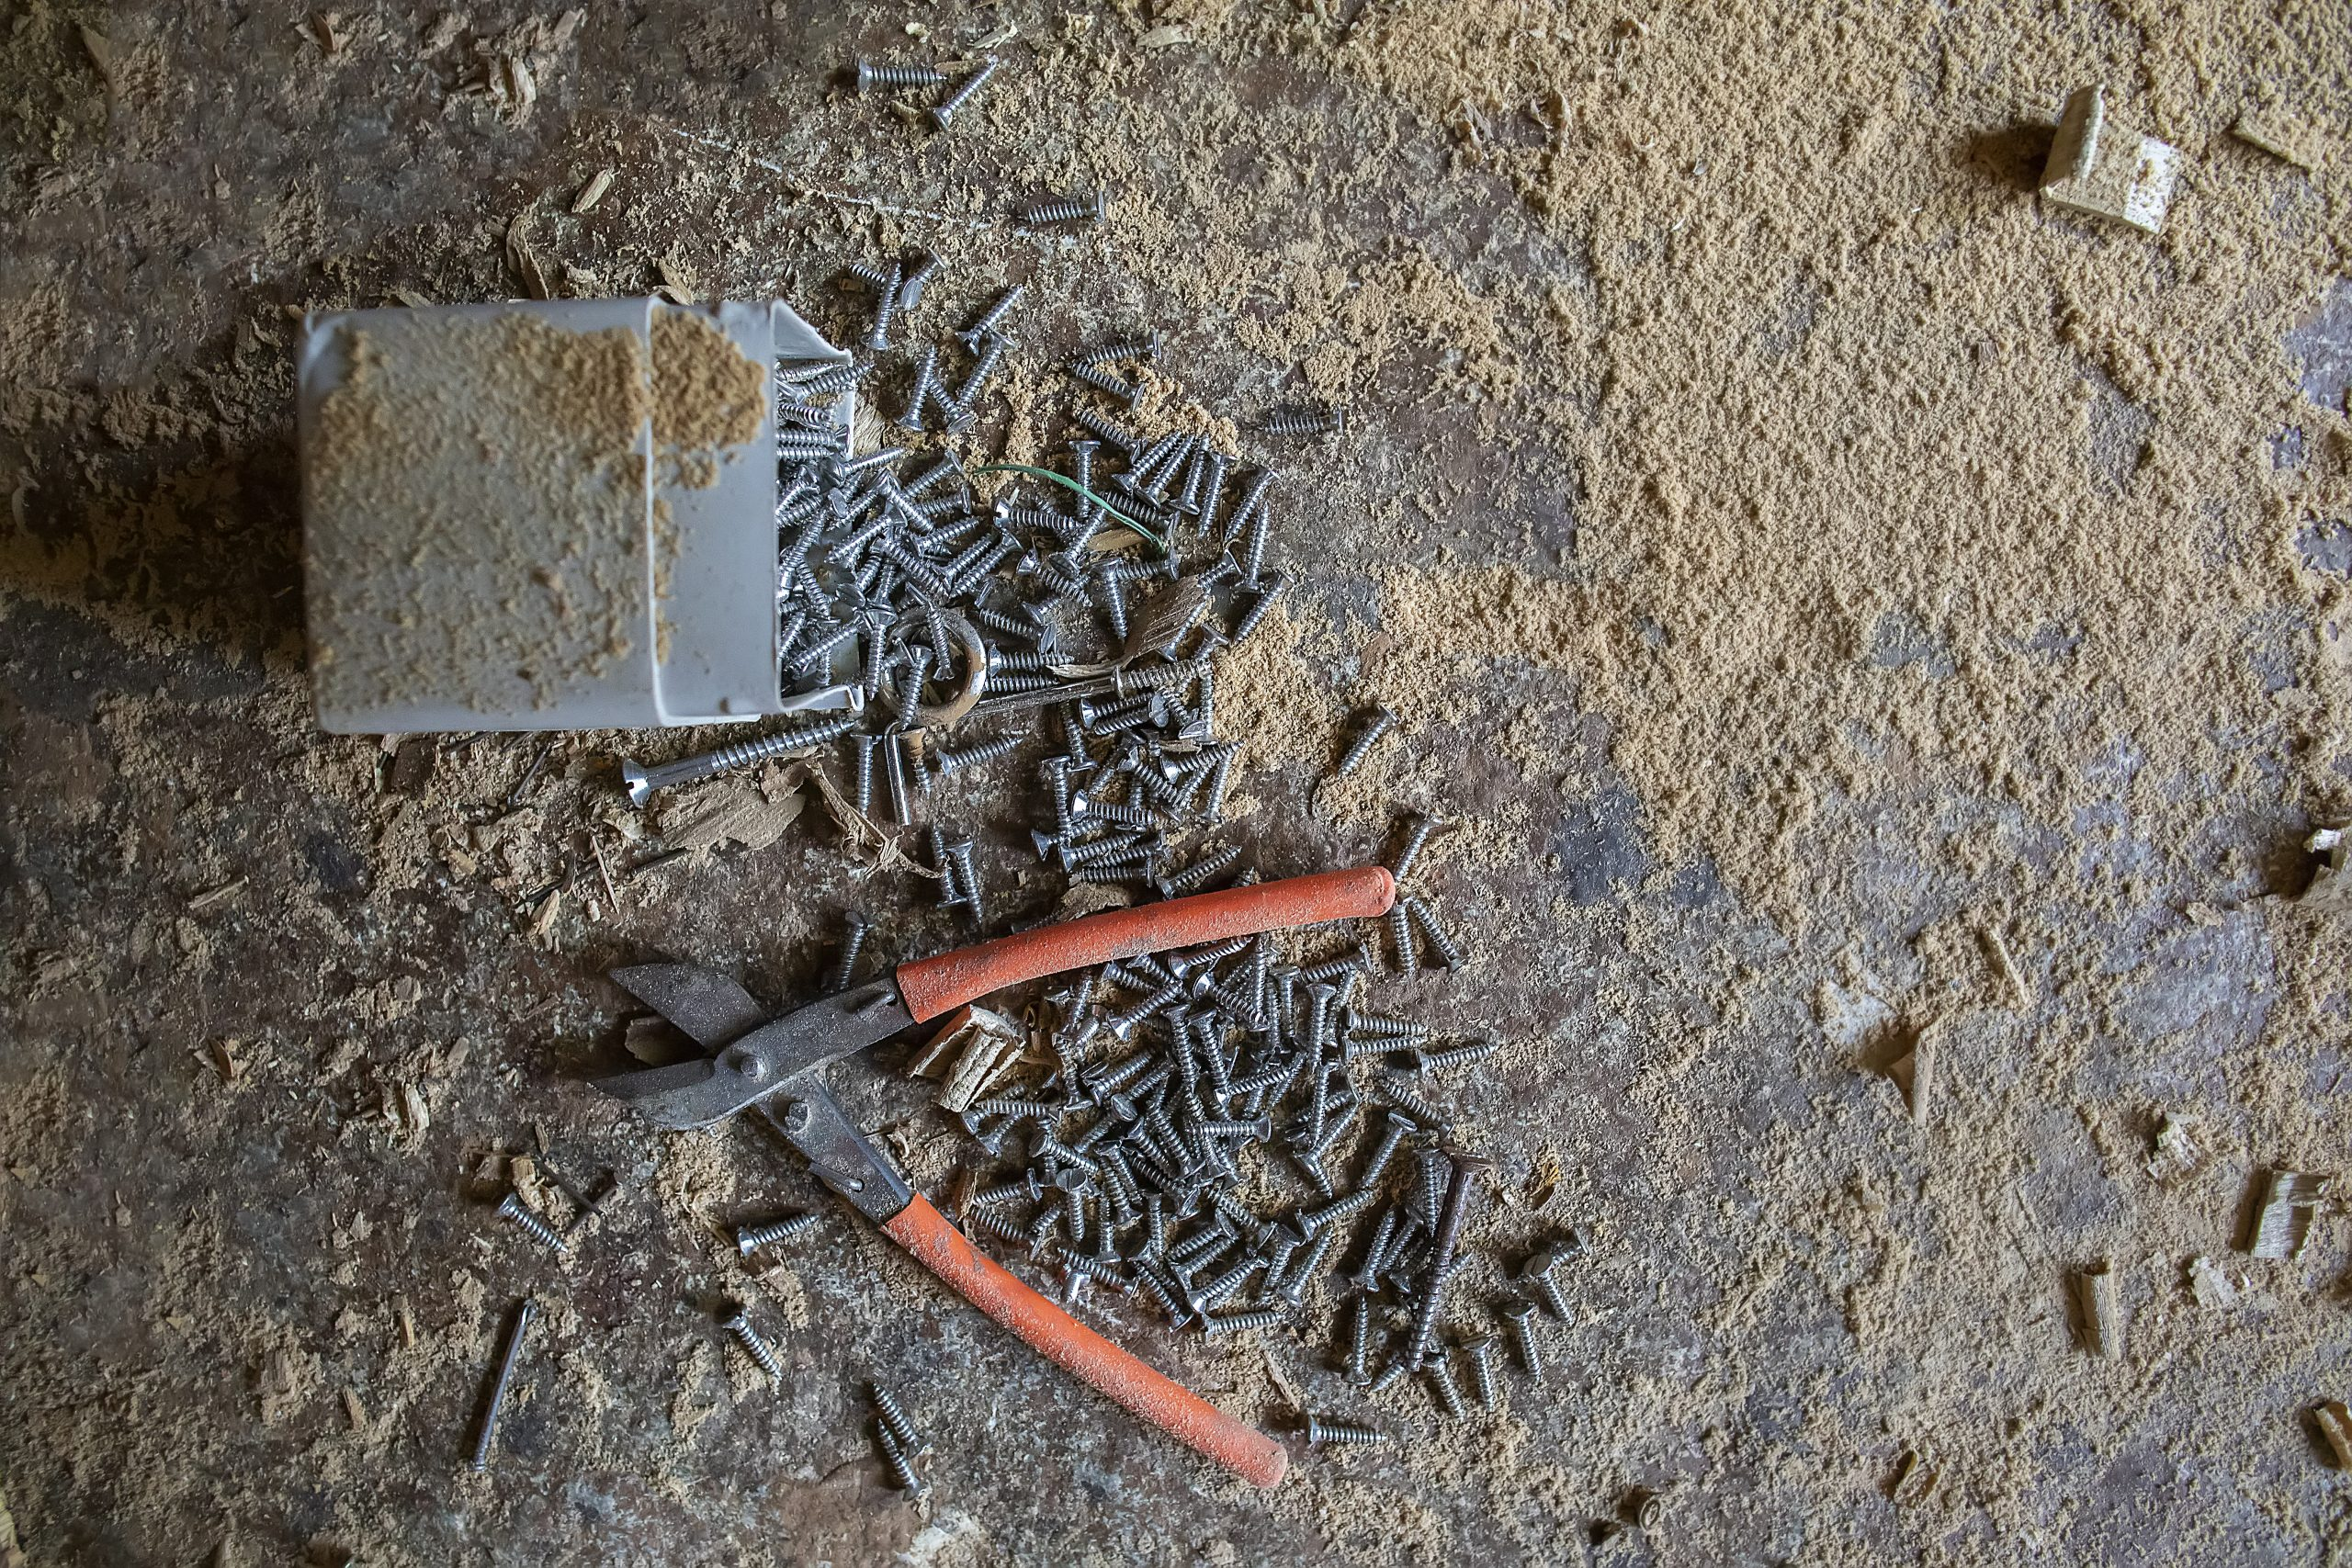 Plier and screws of a carpenter